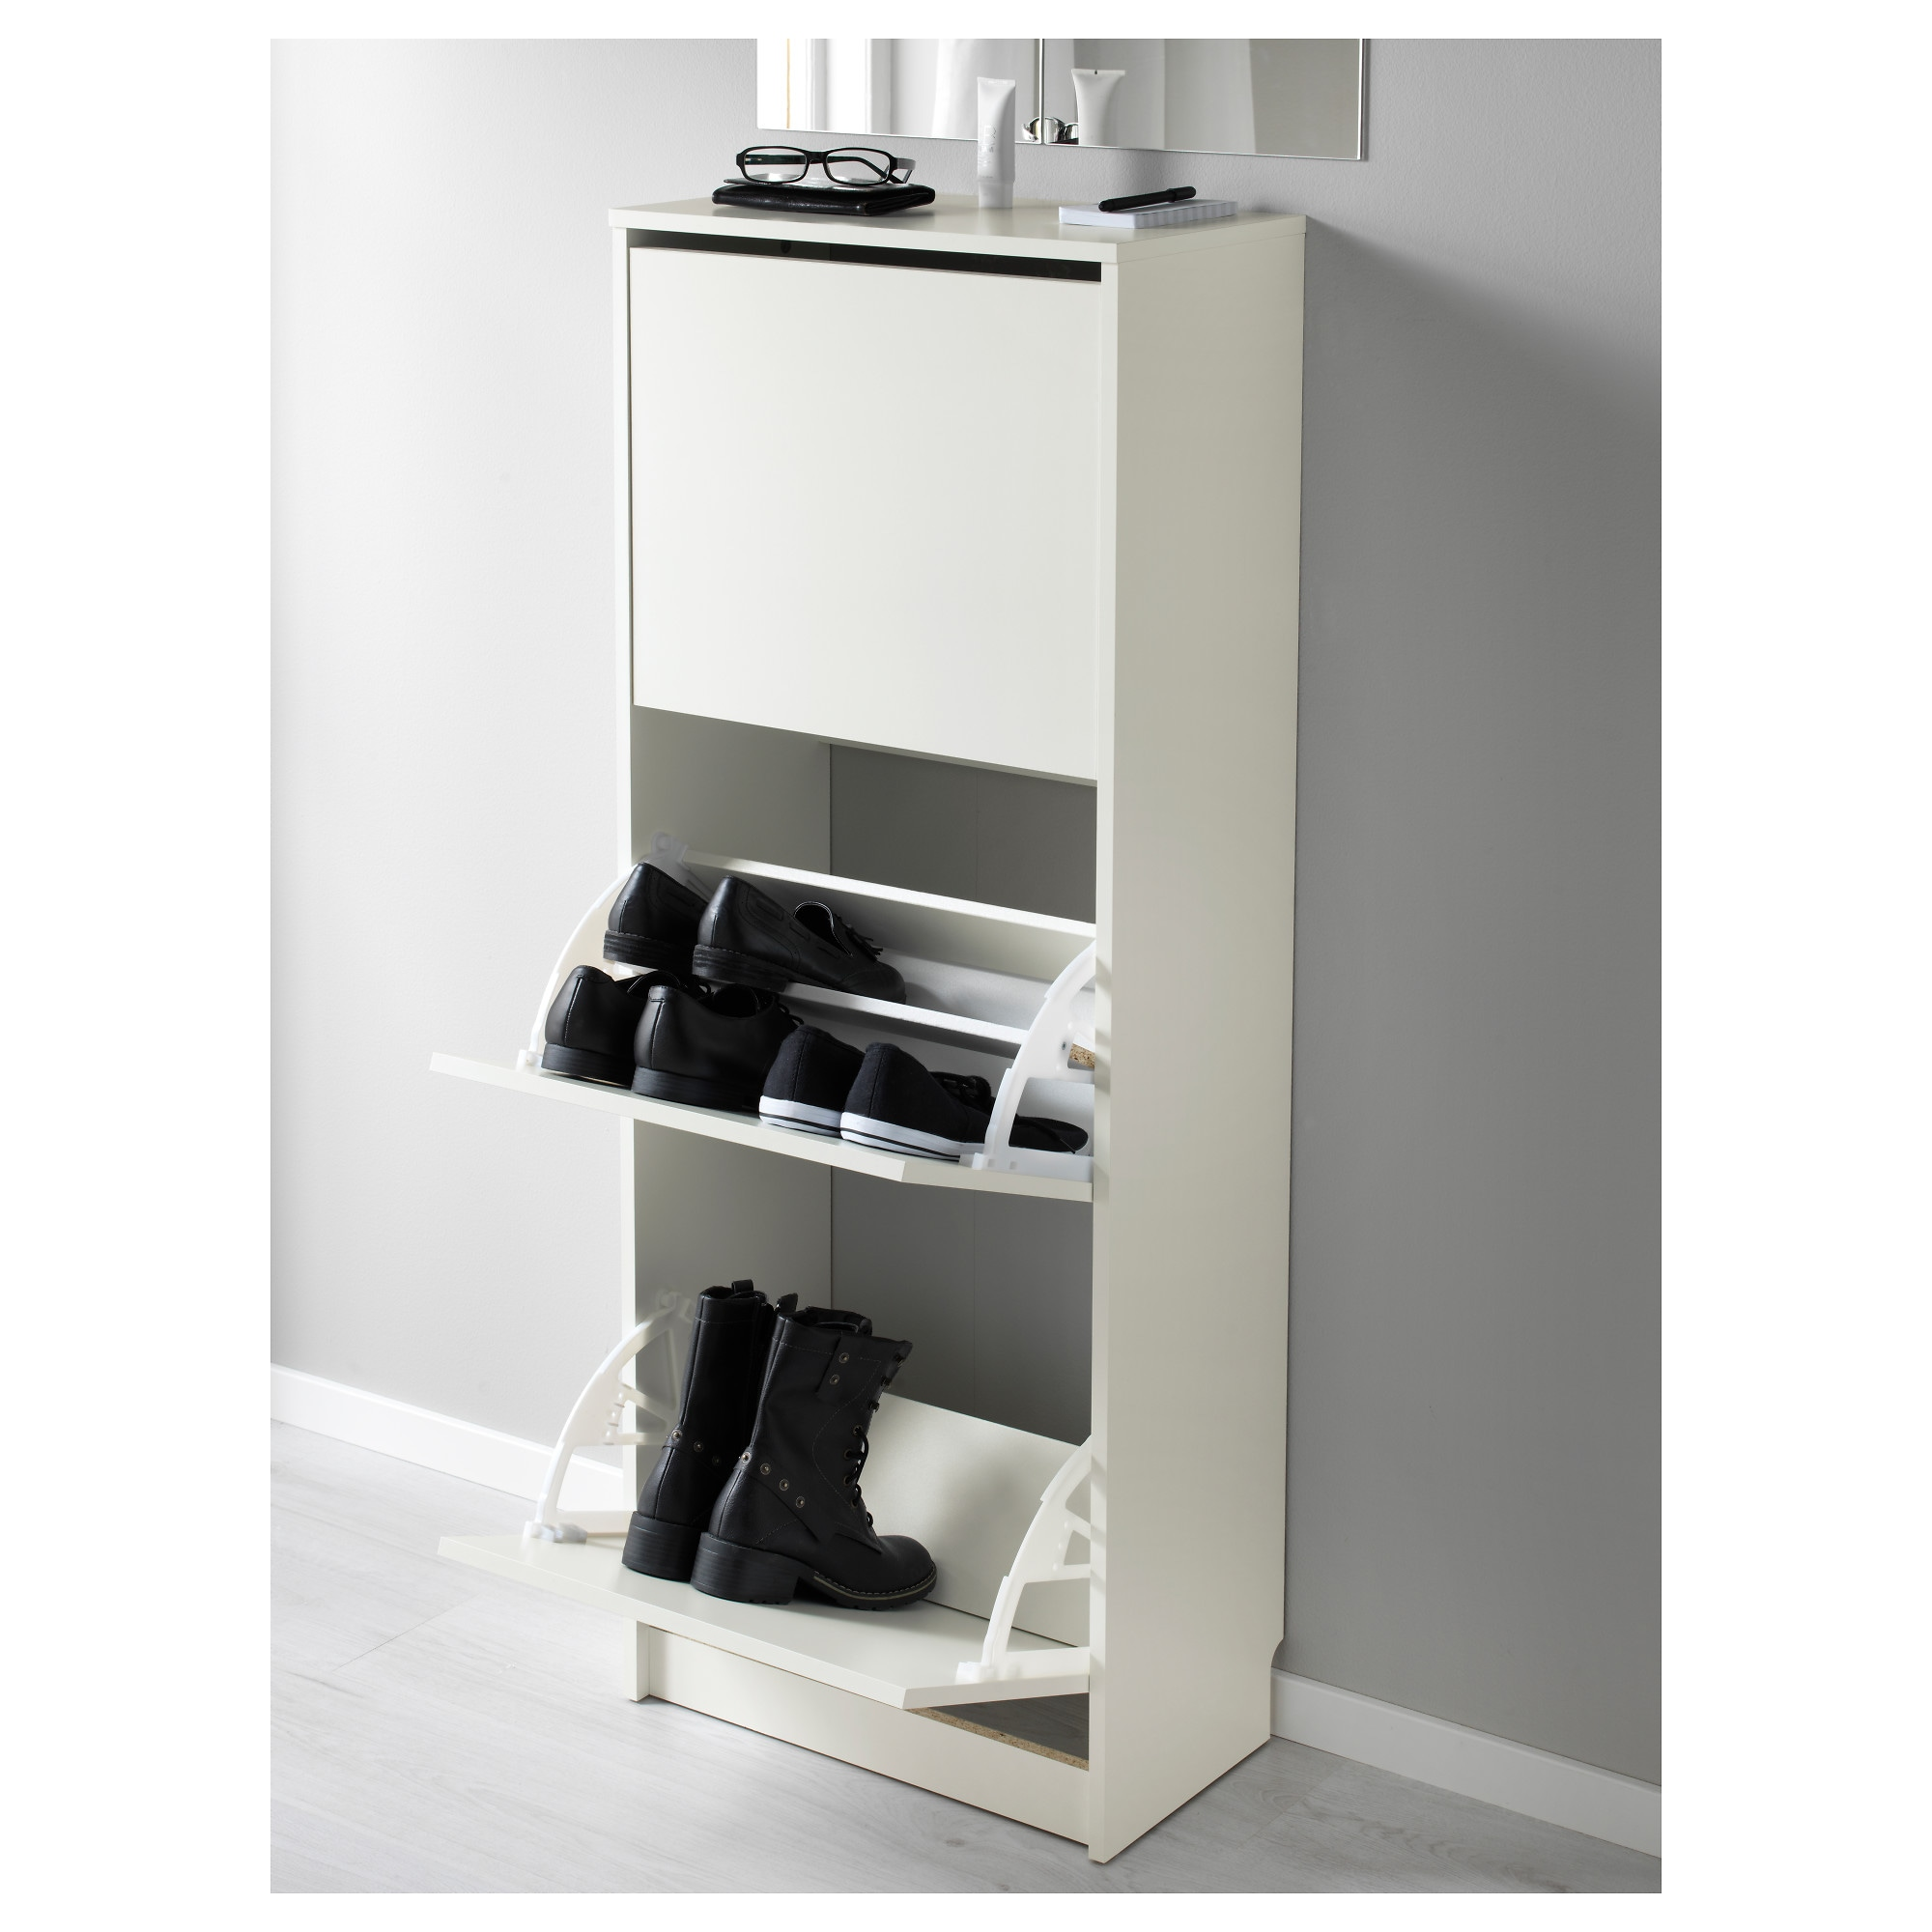 Ikea Shoe Storage Part - 23: BISSA Shoe Cabinet With 3 Compartments - IKEA